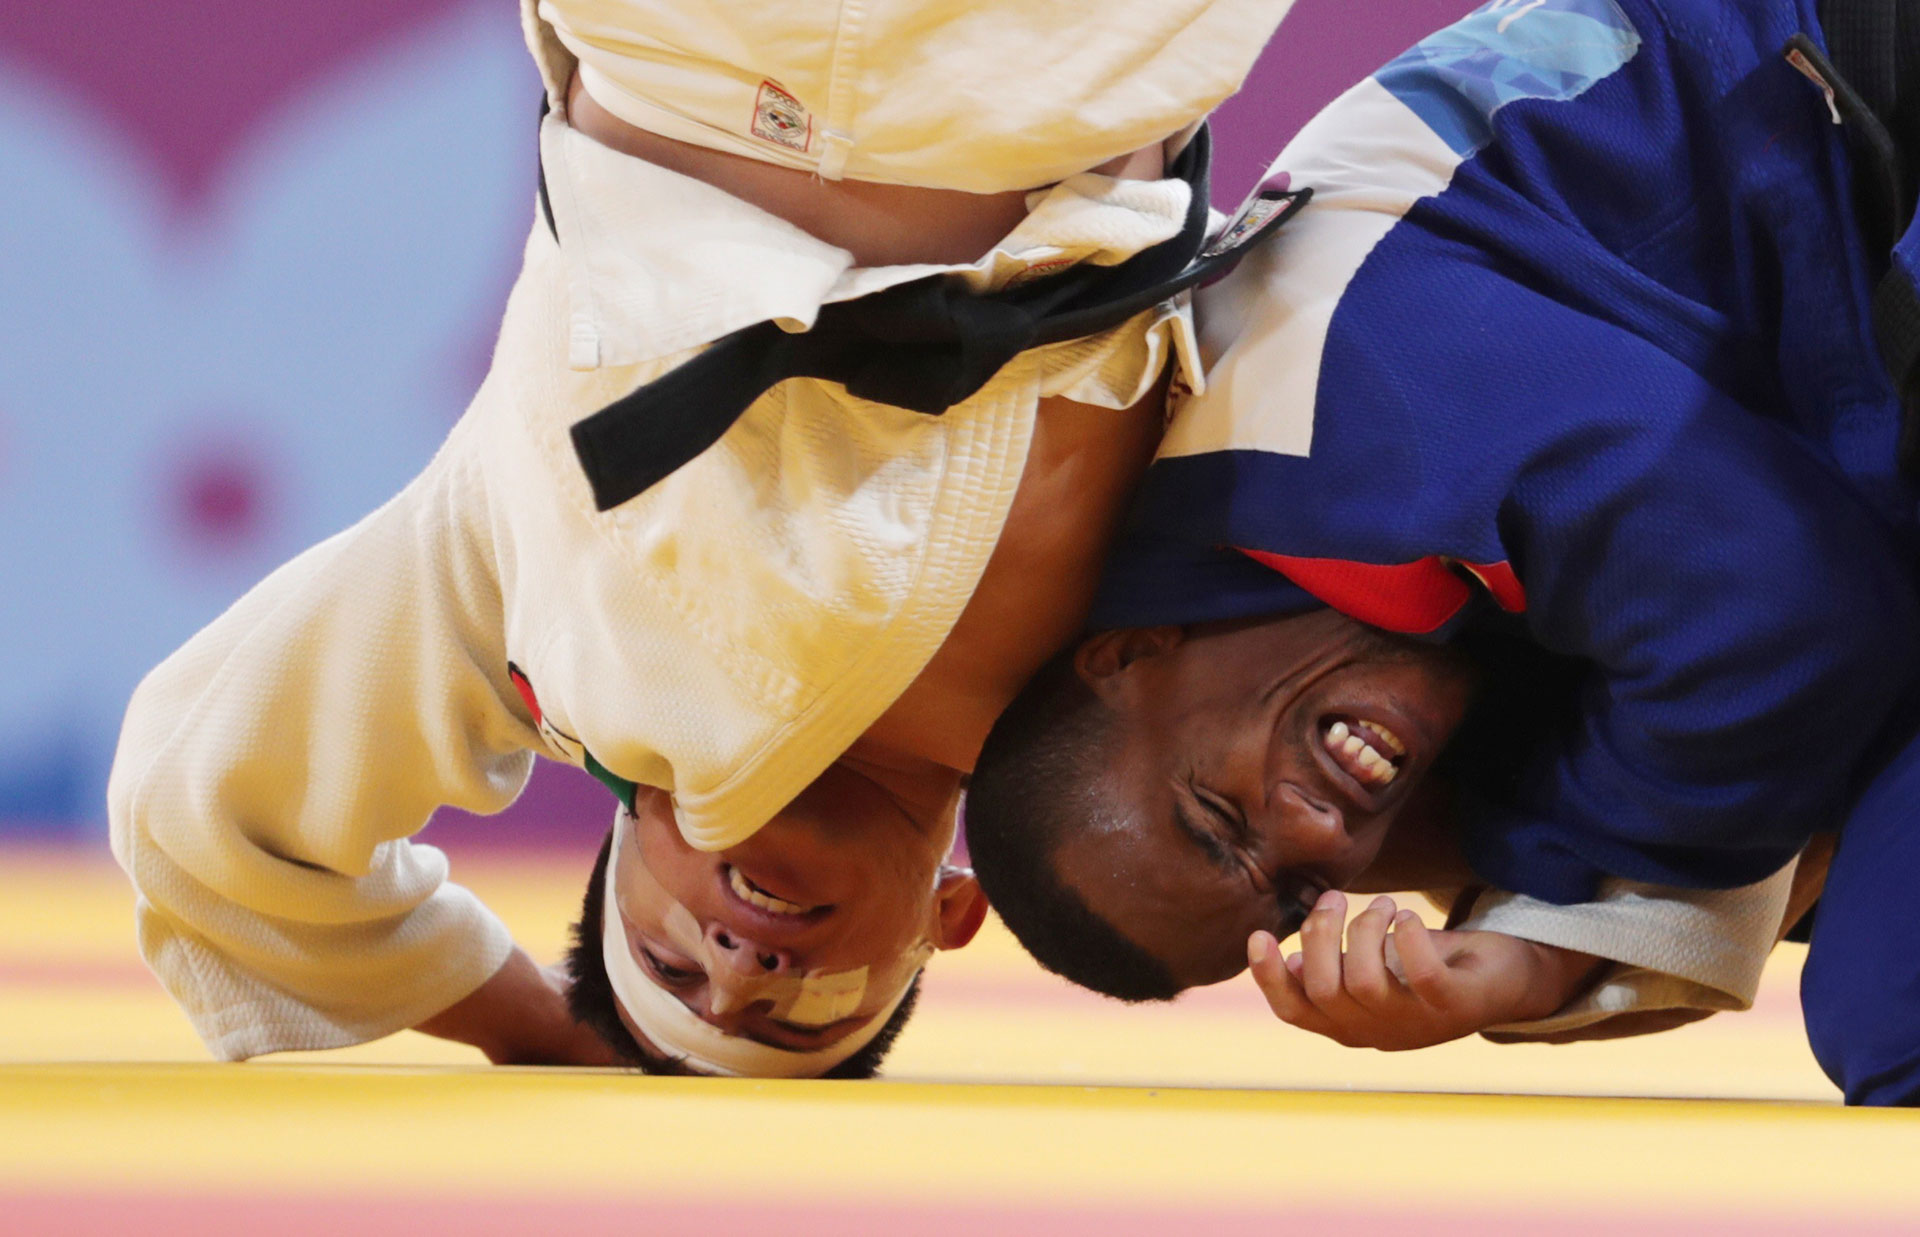 Judo XVIII Pan American Games - Lima 2019 - Men's 66kg Bronze - Villa Deportiva Nacional, Videna, Lima, Peru - August 9, 2019. Cuba's Osniel Solis and Mexico's Nabor Castillo in action. REUTERS/Guadalupe Pardo     TPX IMAGES OF THE DAY